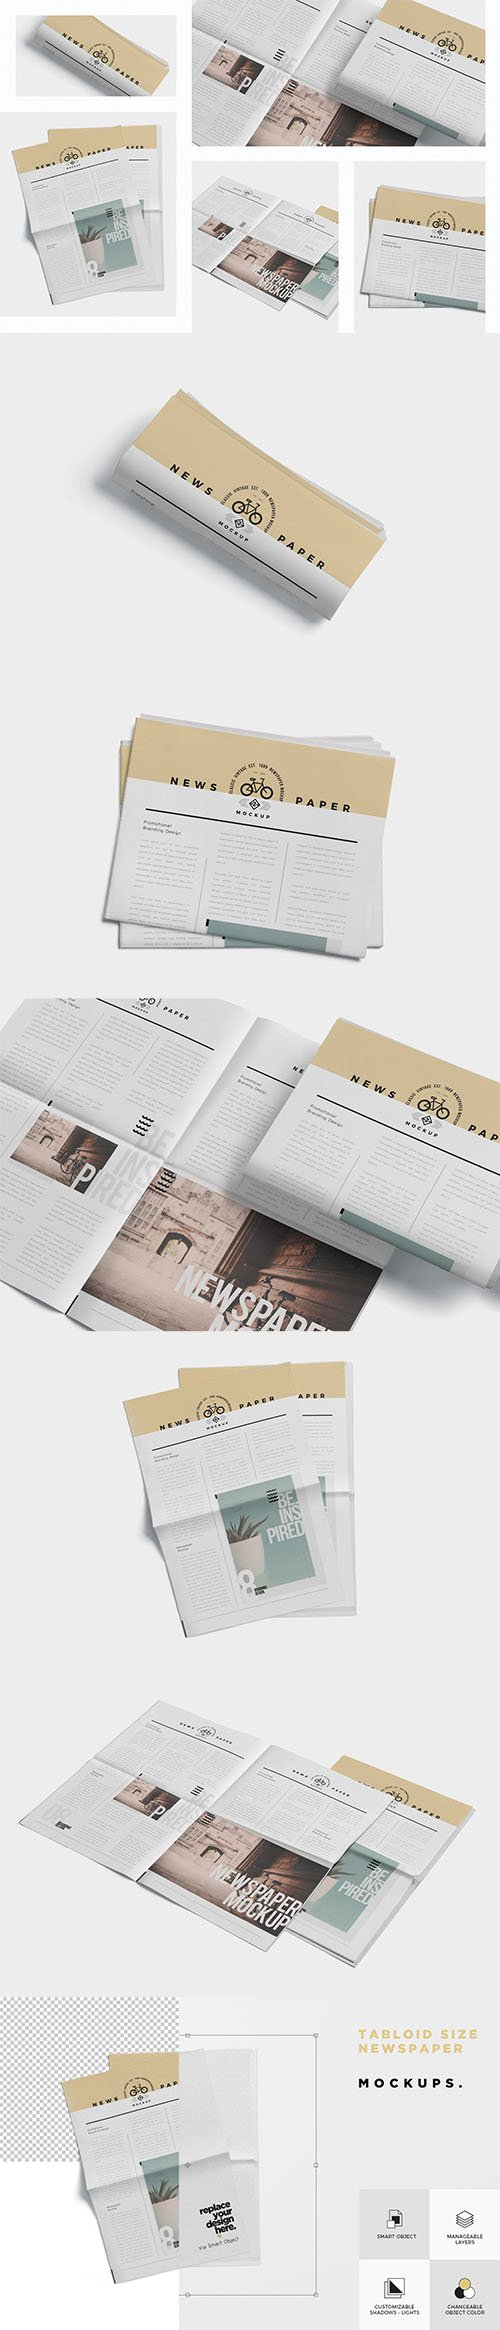 Tabloid Size Newspaper Mockups PSD